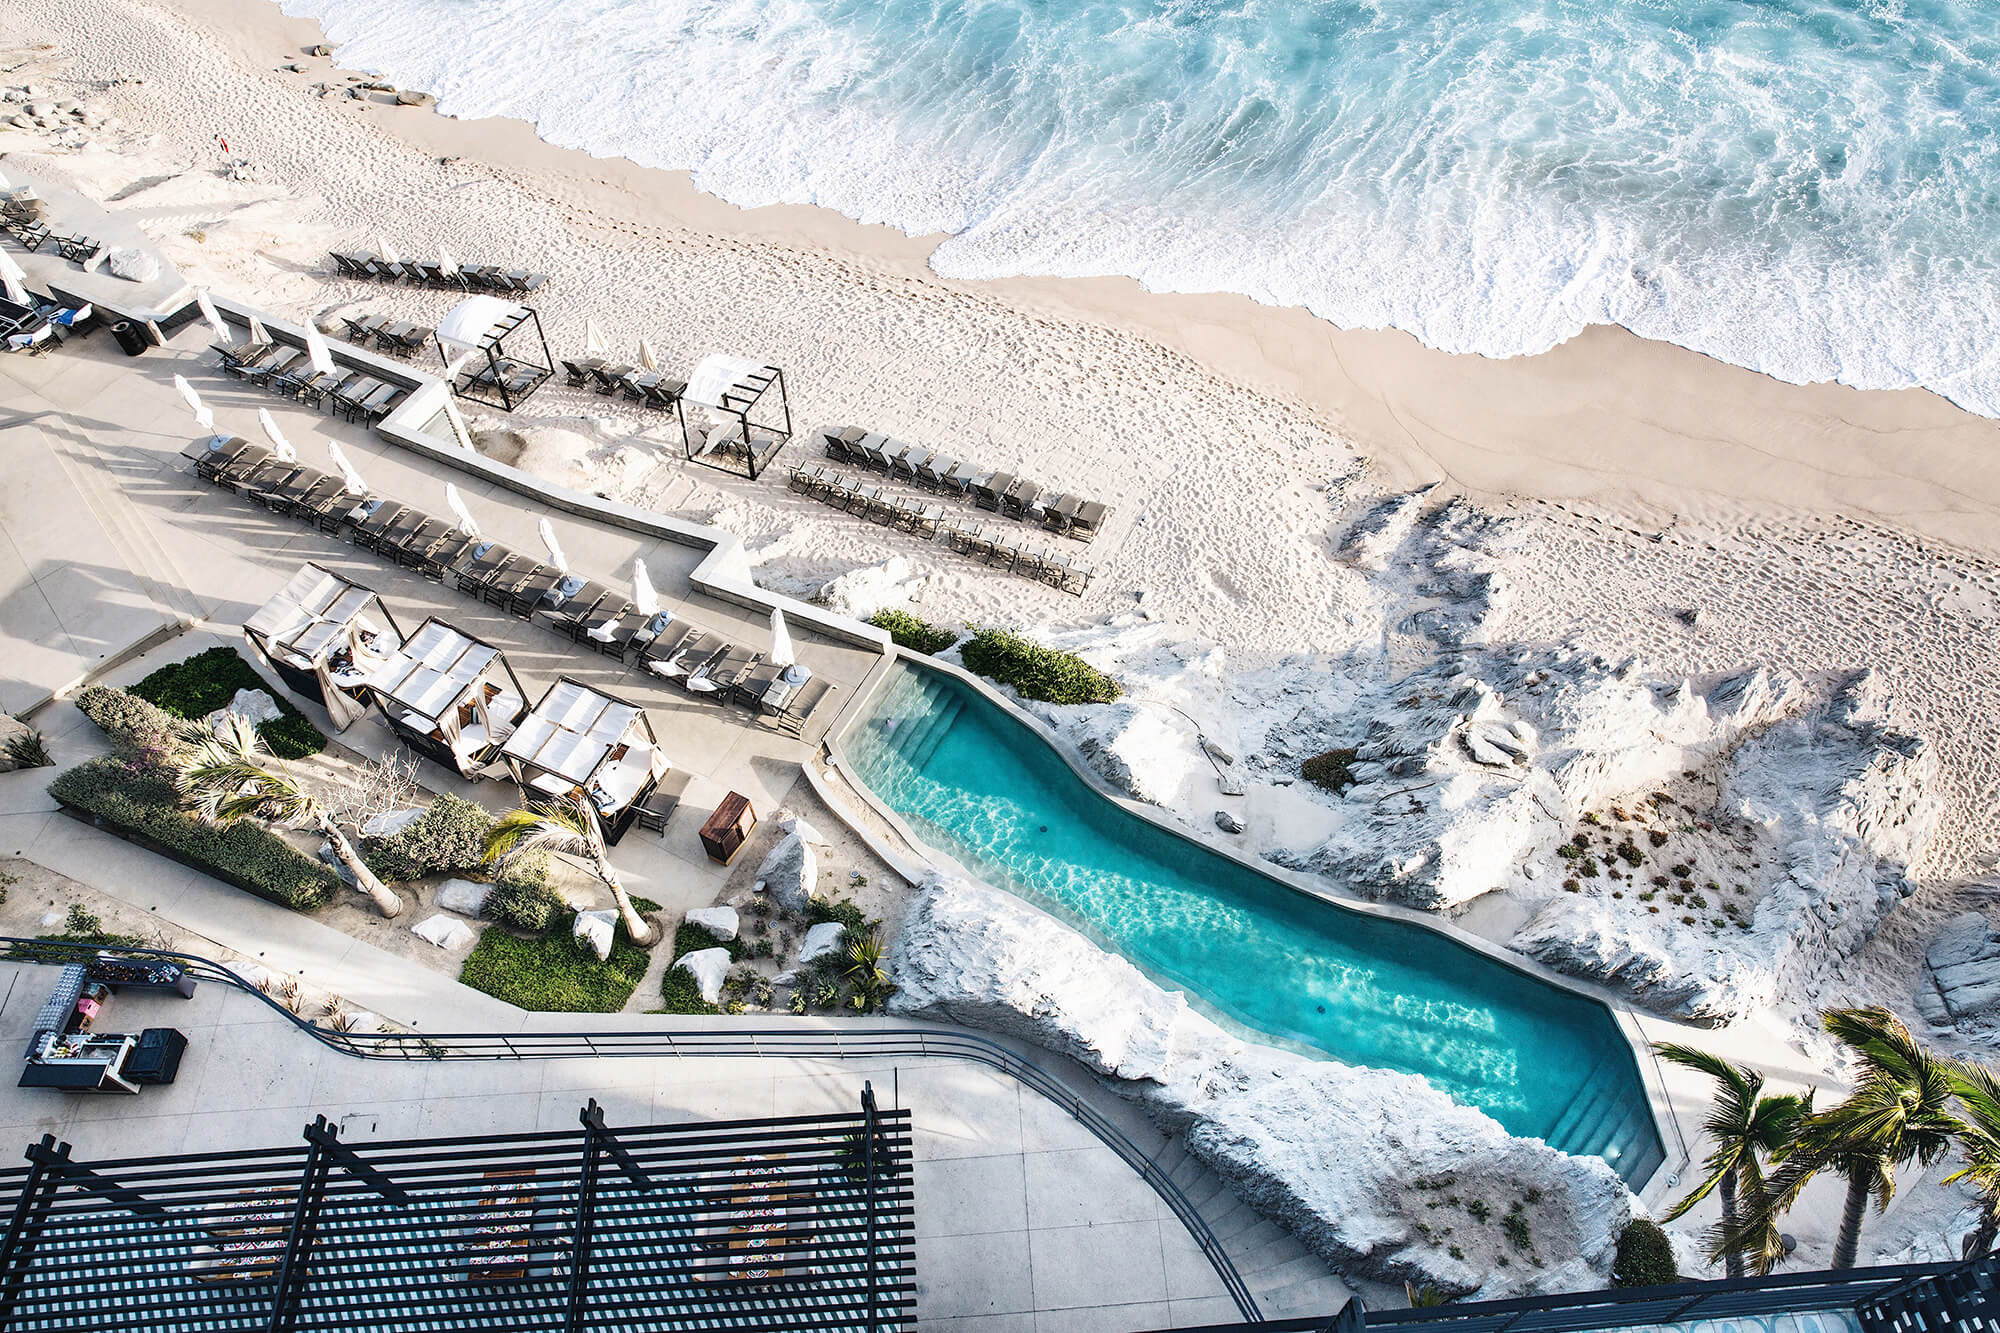 Sona Gasparian goes to The Cape, a Thompson Hotel in Cabo